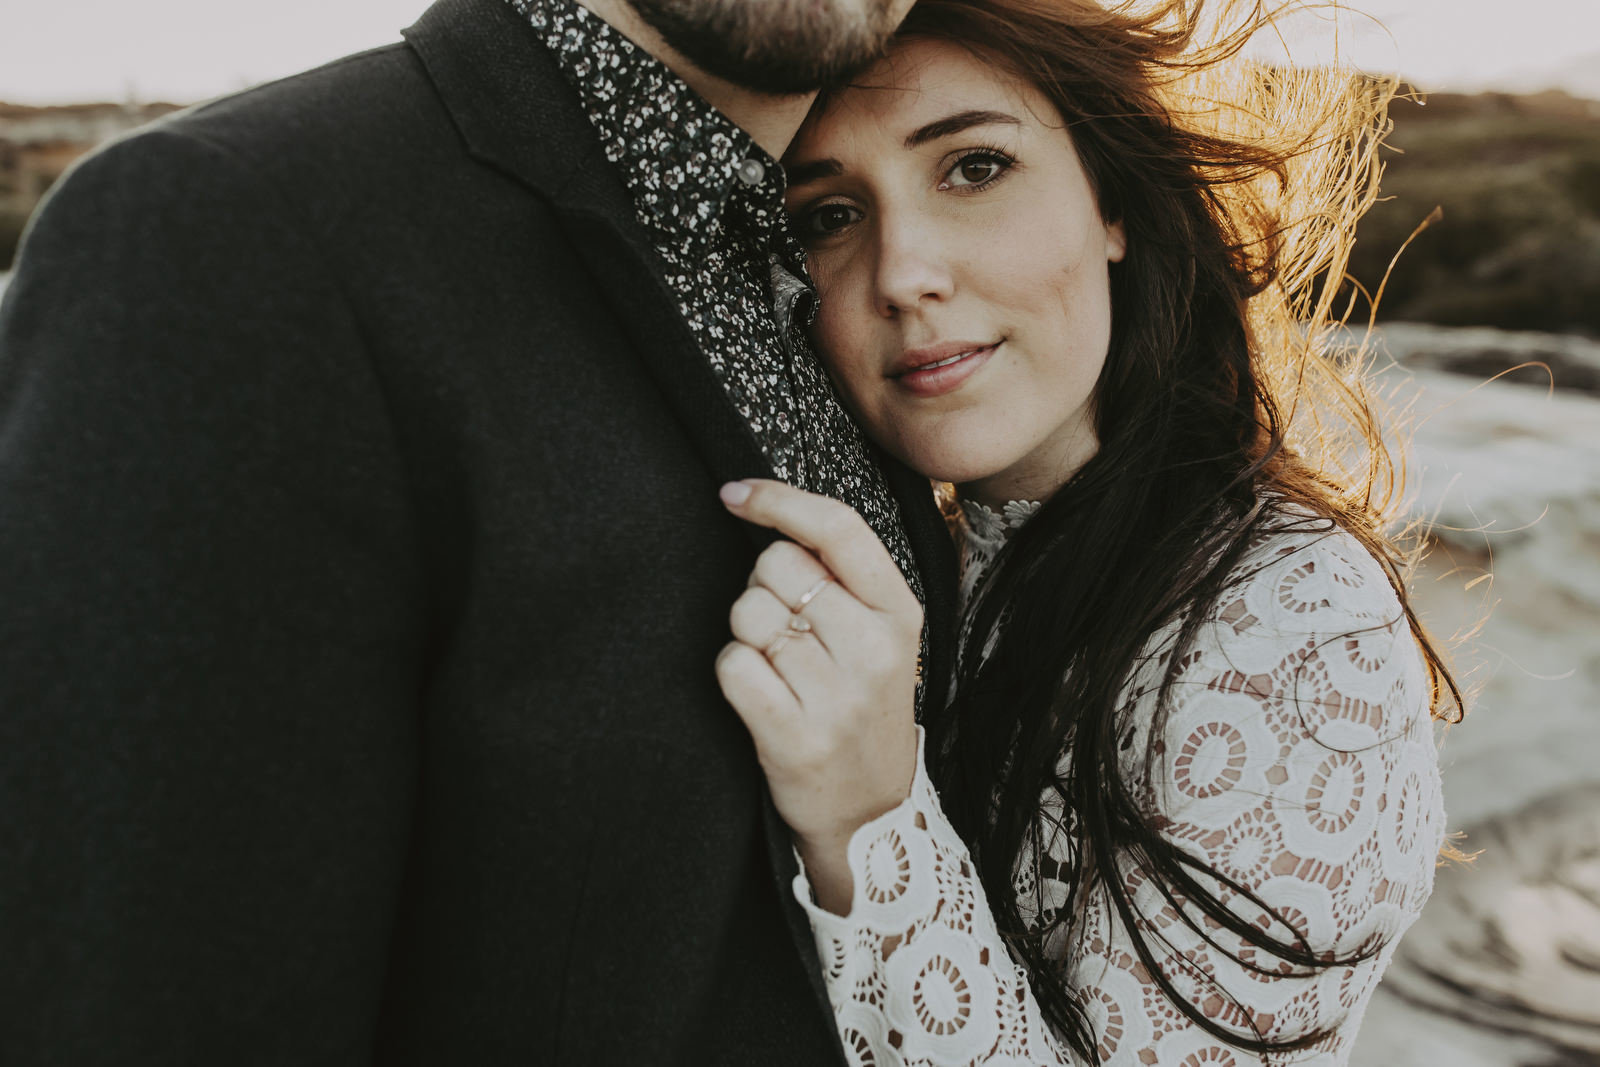 athena-and-camron-sydney-wedding-boho-romance-james-simmons-photography-christian-couple-goals90